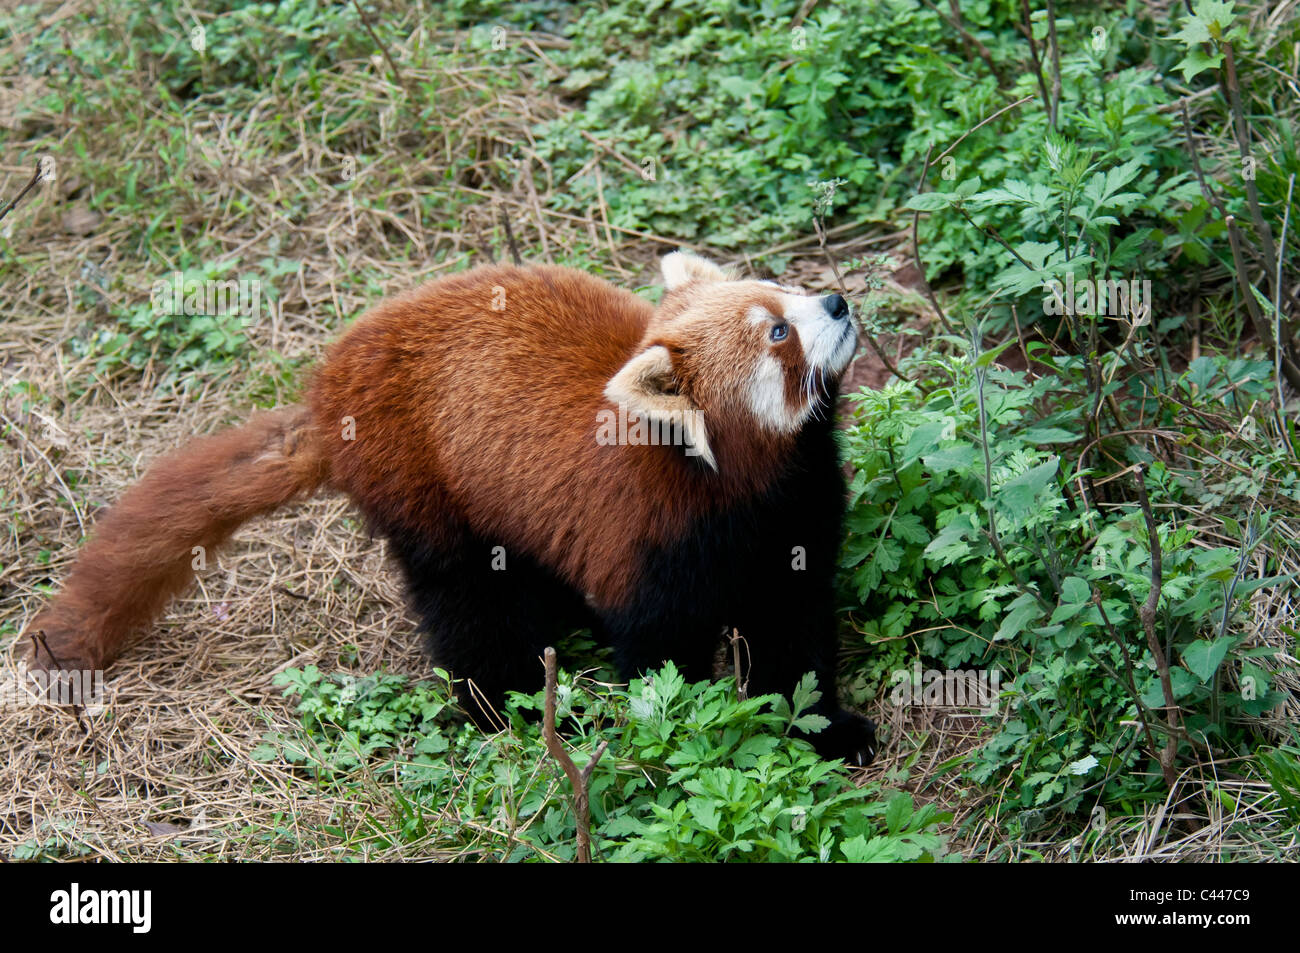 red panda, ailorus fulgens, panda breeding and research center, chengdu, China - Stock Image